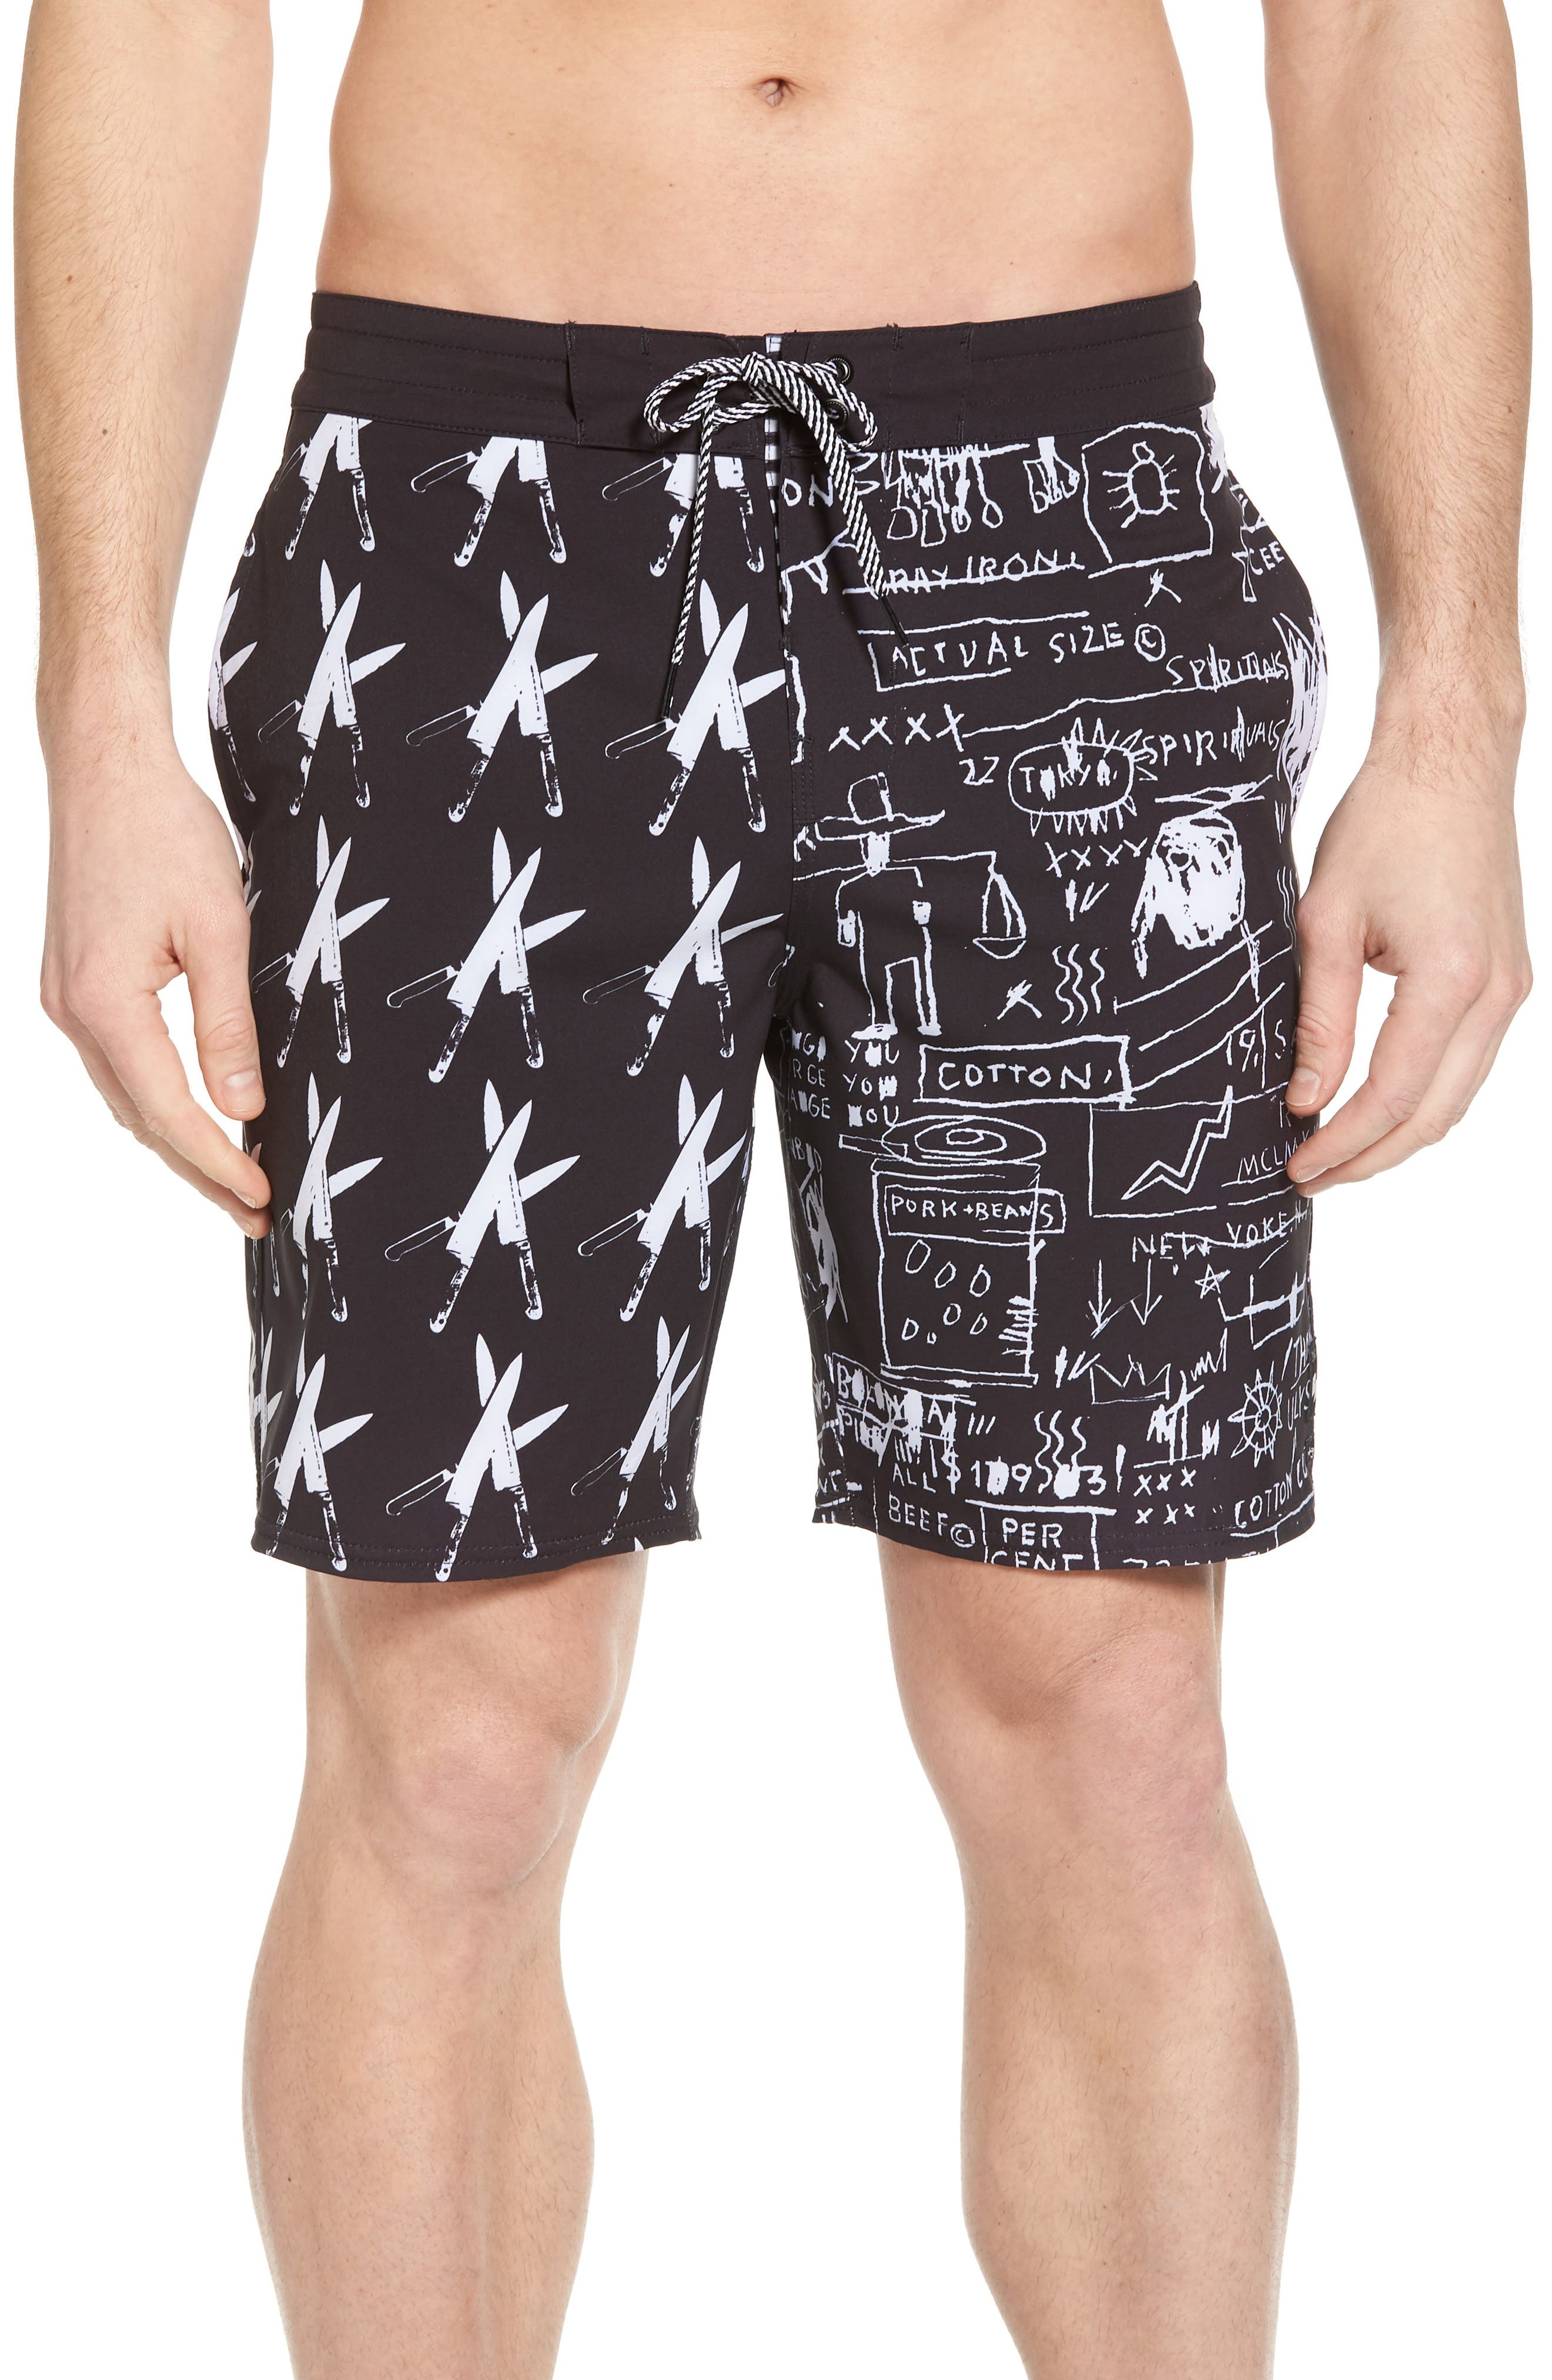 x Warhol Knives Lo Tides Board Shorts,                             Main thumbnail 1, color,                             Black/ White